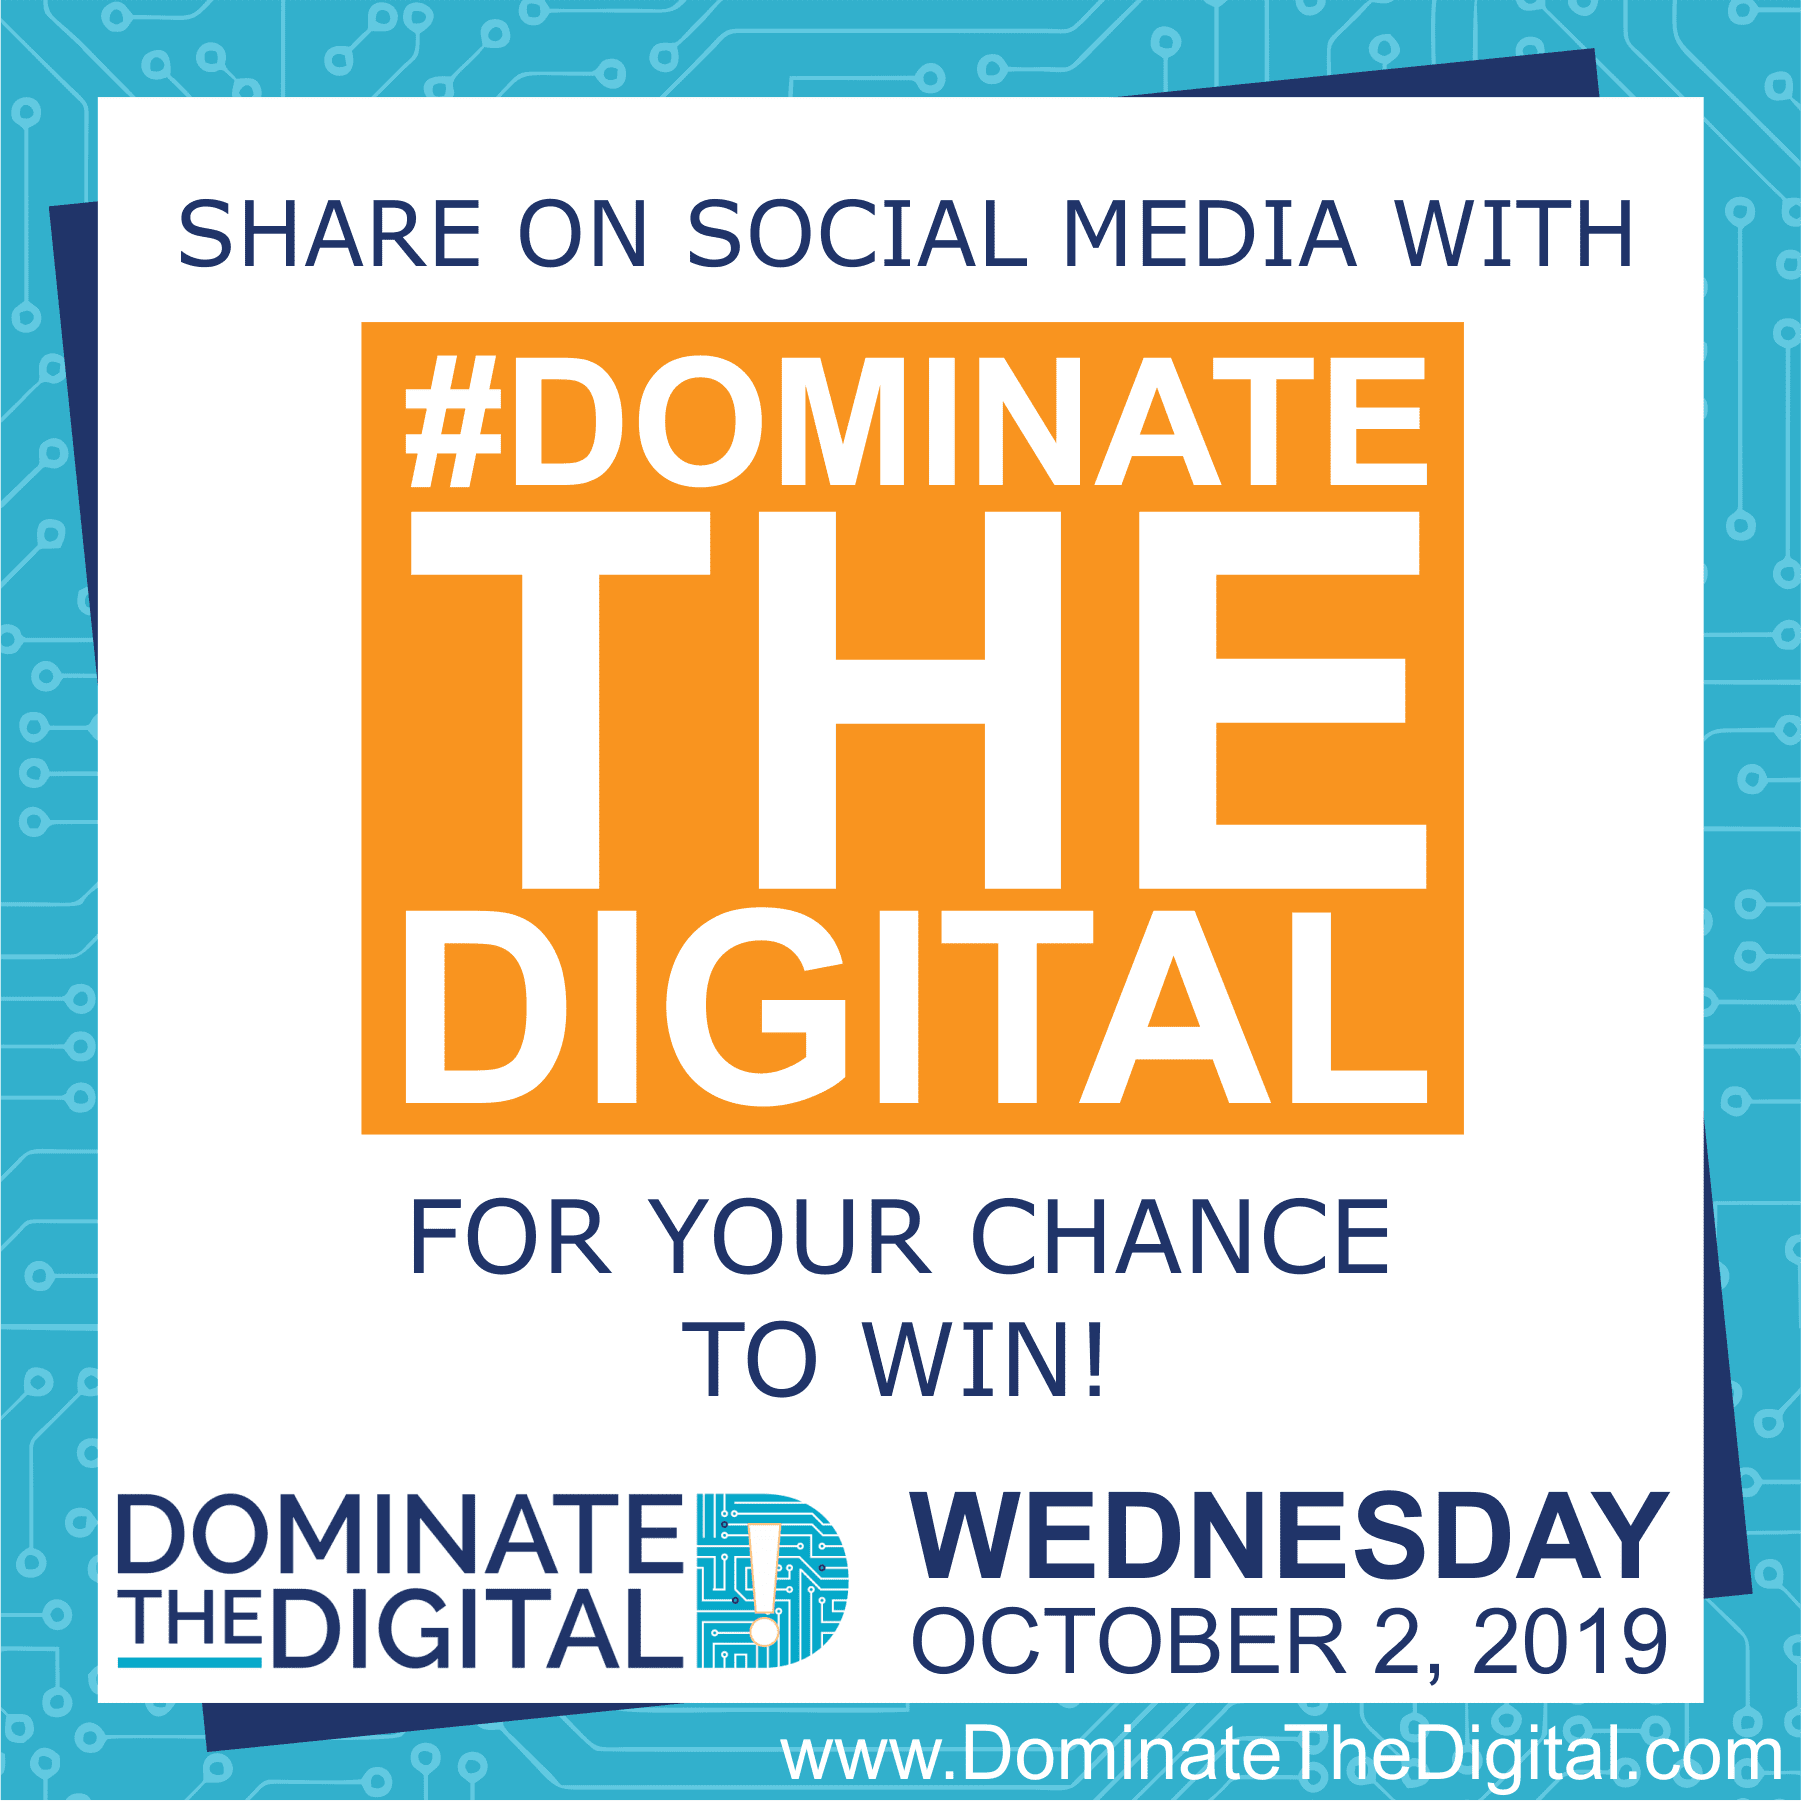 Share on Social Media with #DominateTheDigital for your Chance to Win!